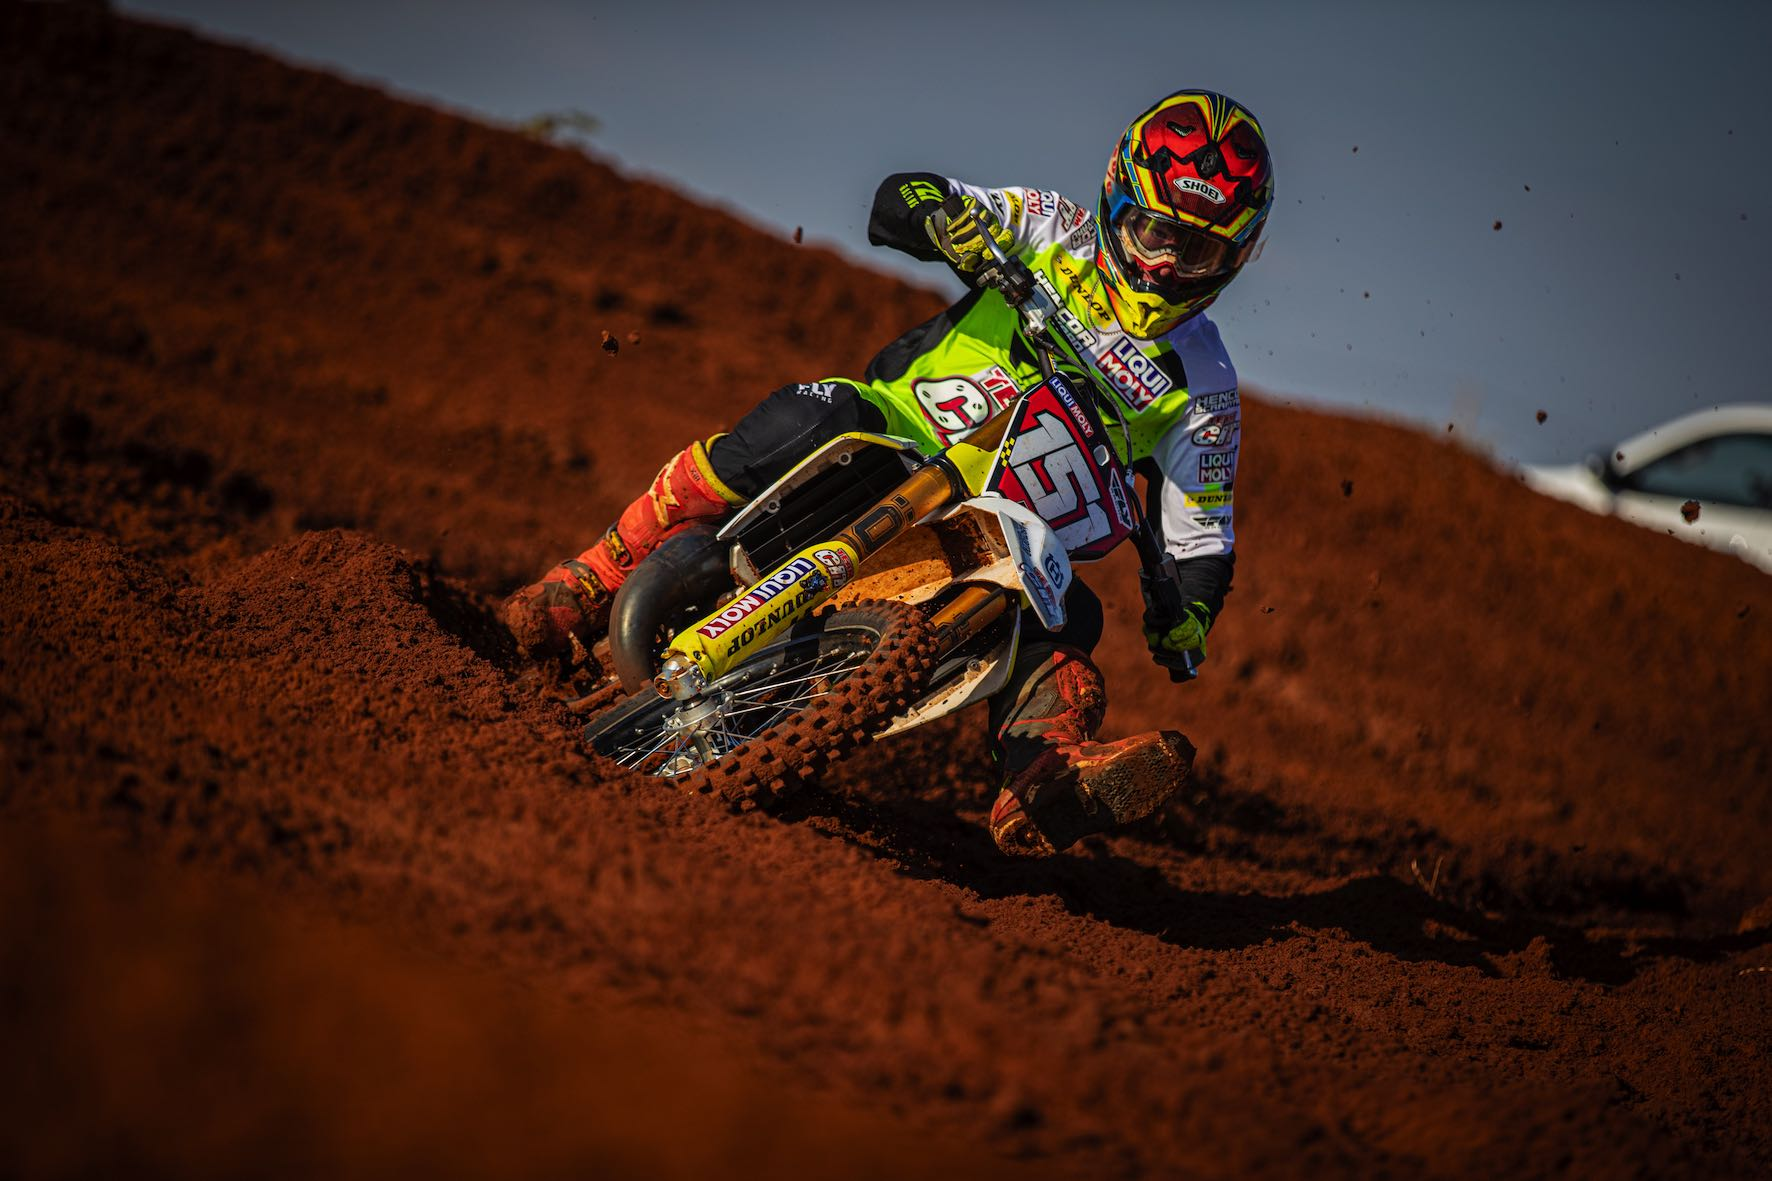 Dalton Venter racing his way to victory at Round 3 of the SA Motocross Nationals